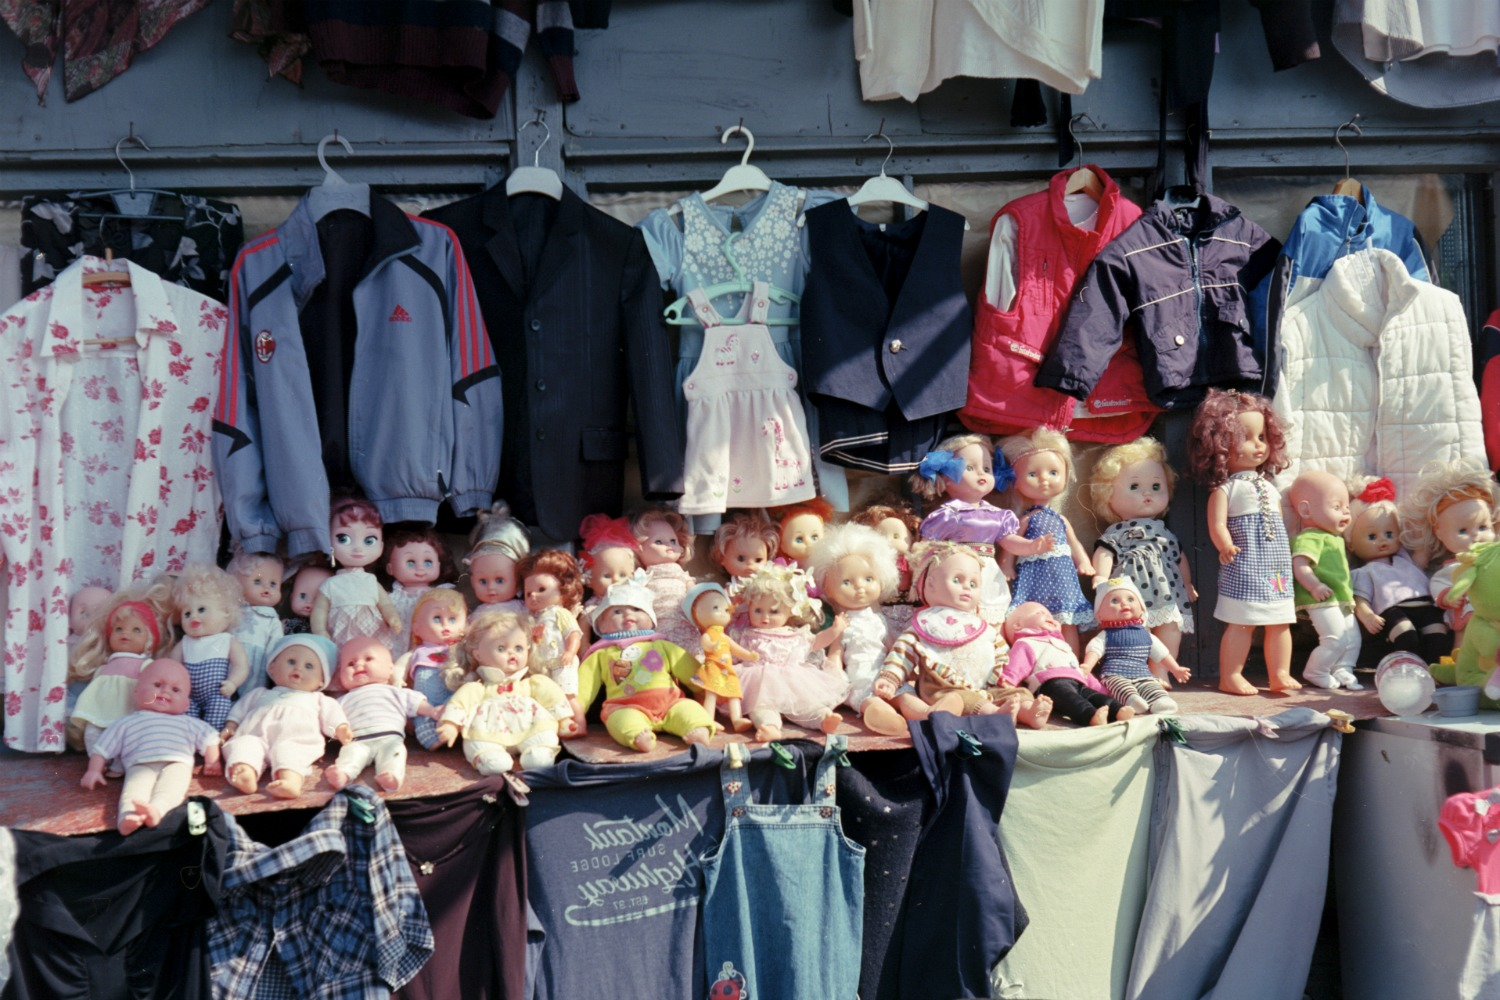 Dolls on the stall waiting for their new owners. Photo: Sofi Mdivnishvili/OC Media.